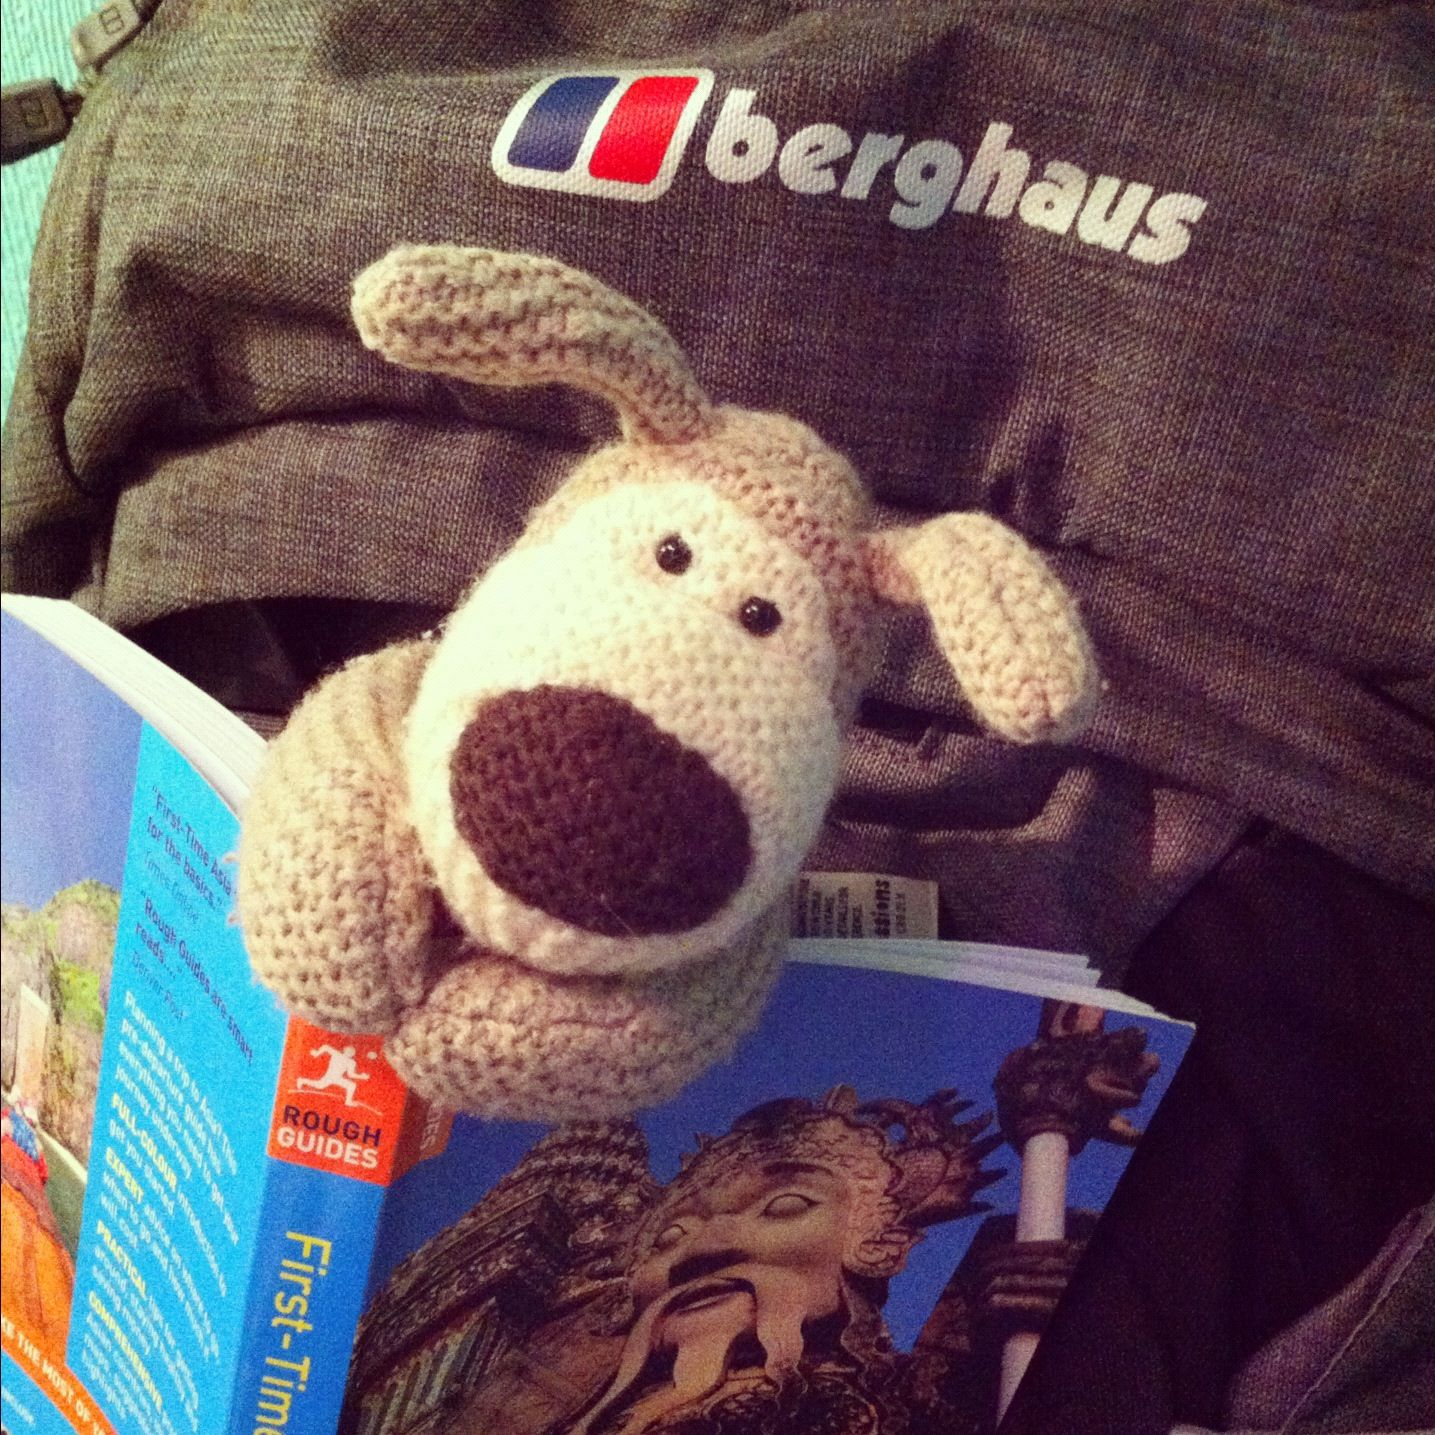 Boofle Knitting Pattern : Boofle in my backpack getting ready for RTW. www.totallysamsworld.com My Bo...